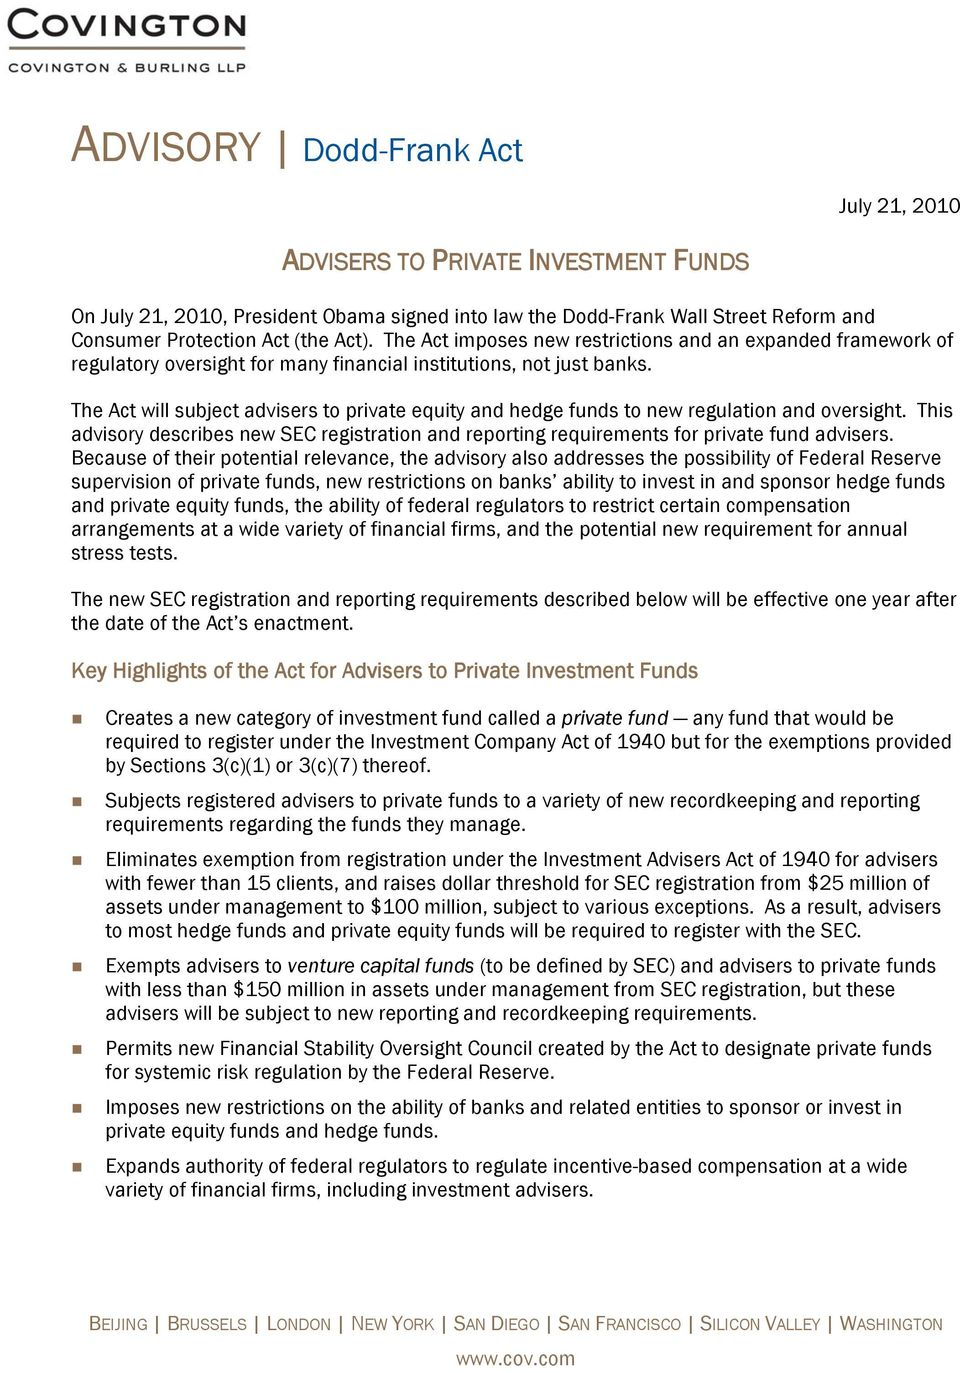 The Act will subject advisers to private equity and hedge funds to new regulation and oversight. This advisory describes new SEC registration and reporting requirements for private fund advisers.